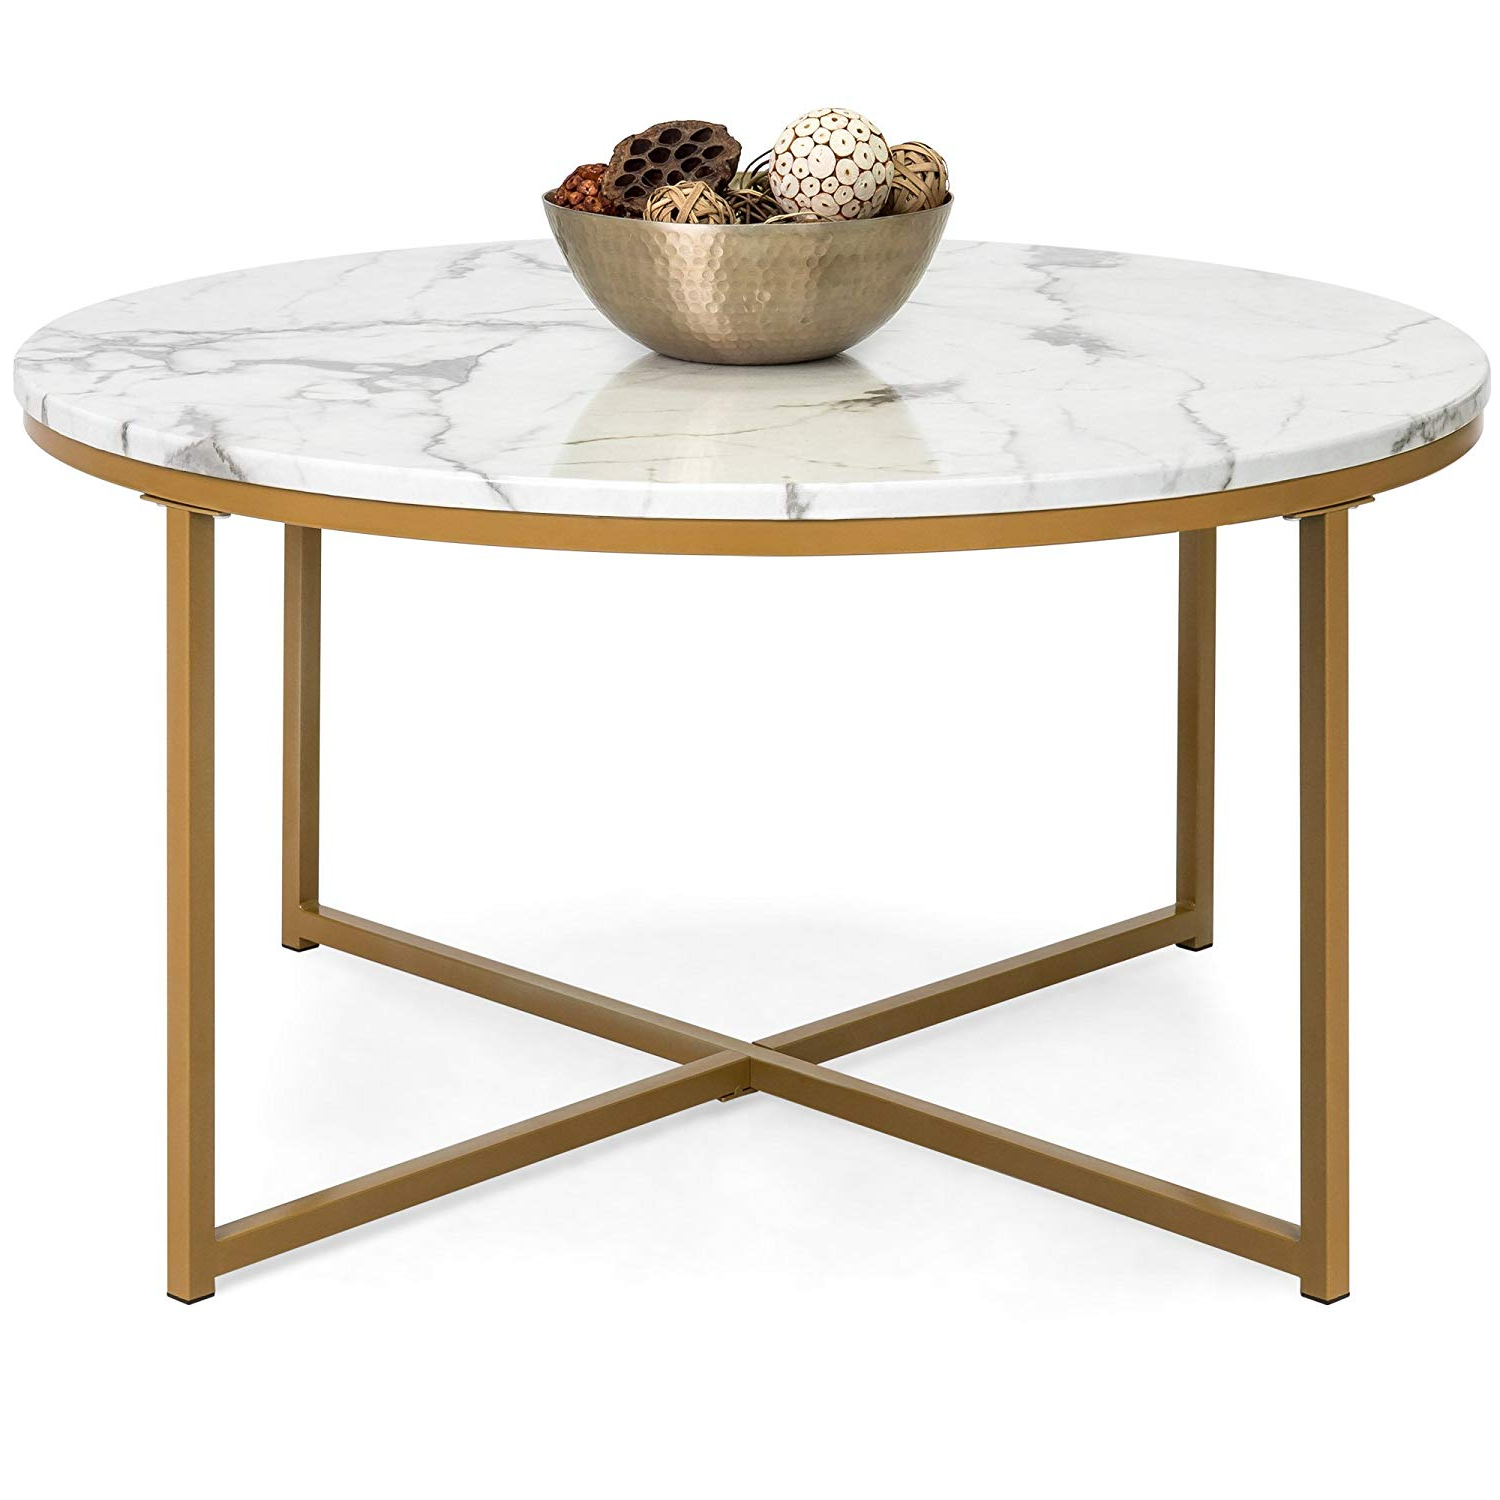 Modern Coffee Table With Gold Frame And Faux Marble Top Within Most Popular Faux Marble Finish Metal Contemporary Dining Tables (View 14 of 25)